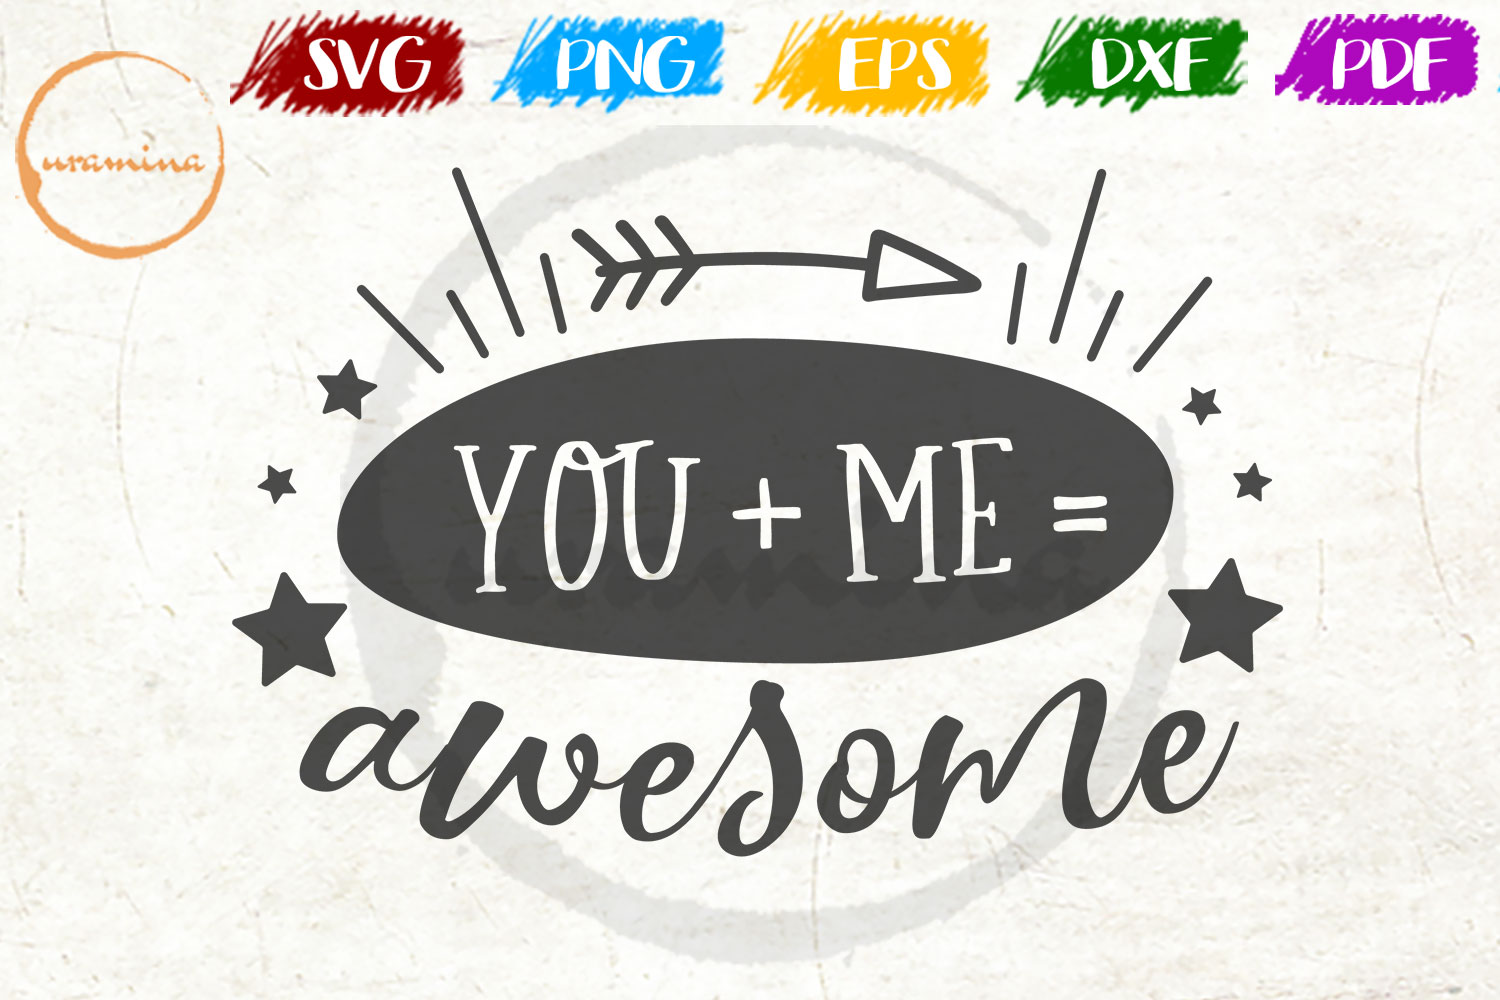 Download Free You Me Awesome Graphic By Uramina Creative Fabrica for Cricut Explore, Silhouette and other cutting machines.